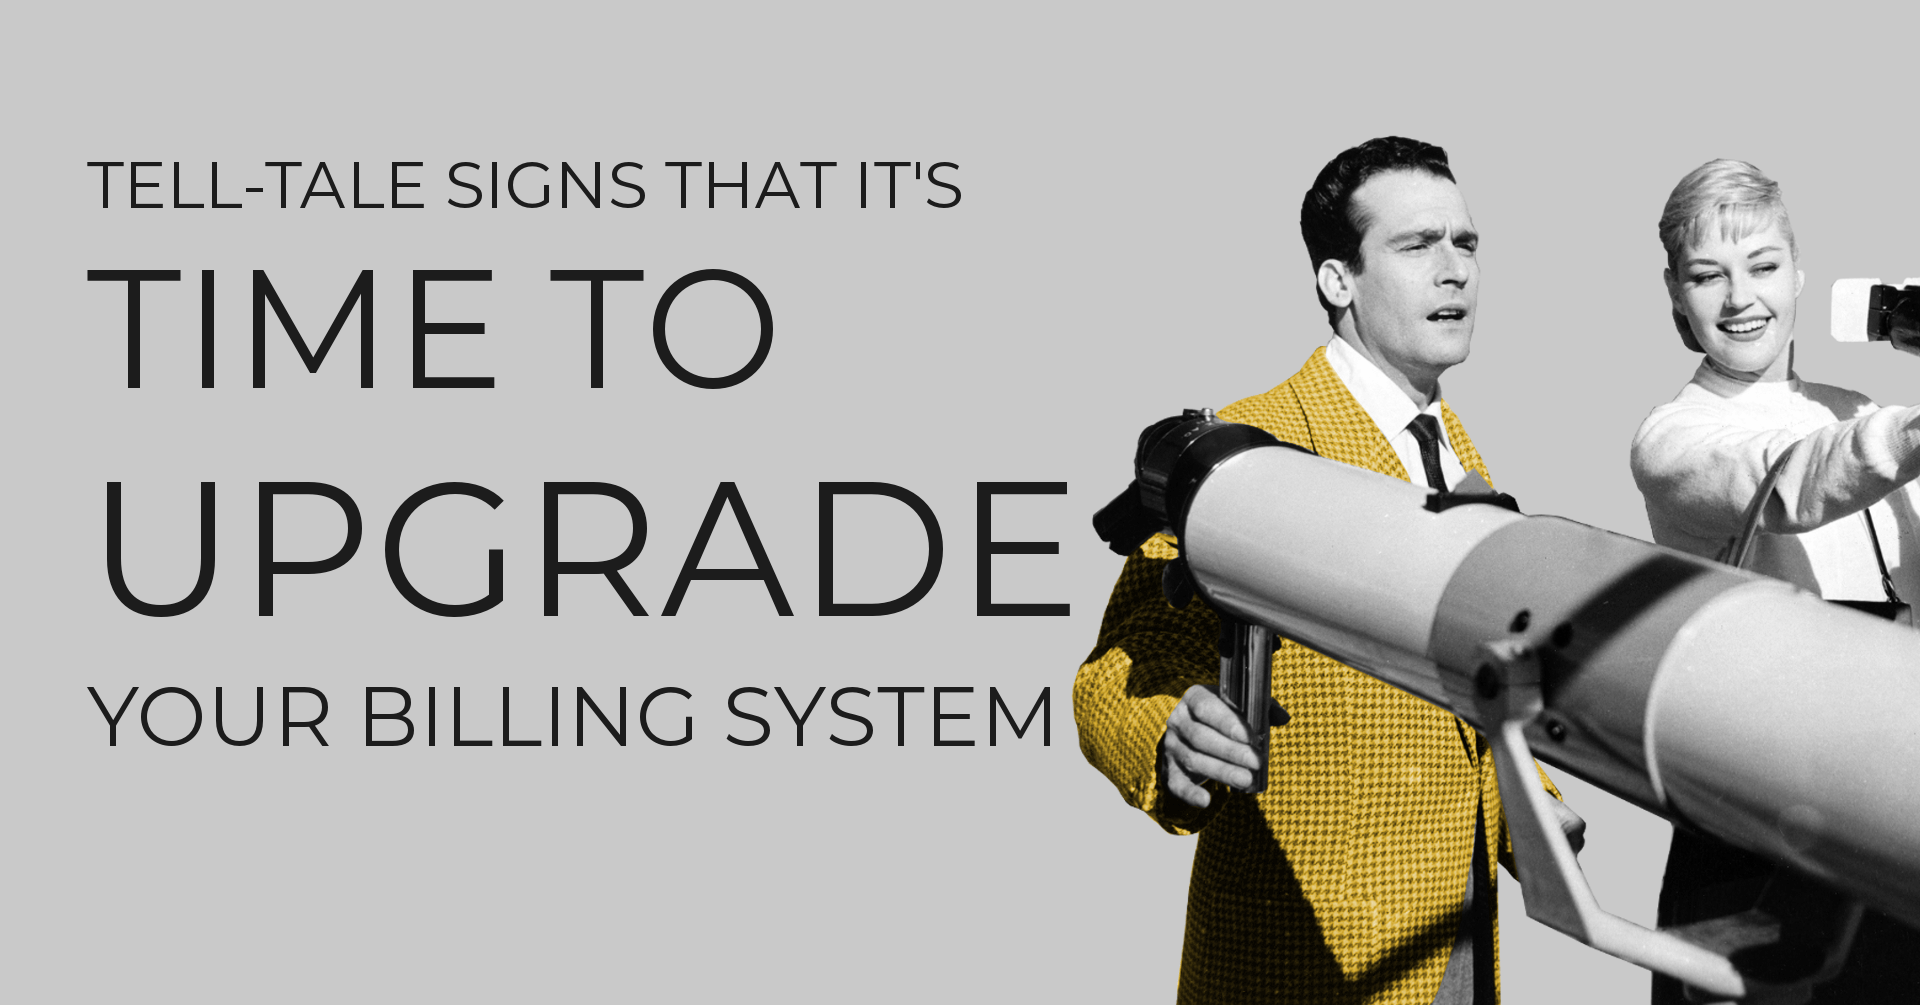 Tell-tale signs that it's time to upgrade your billing system